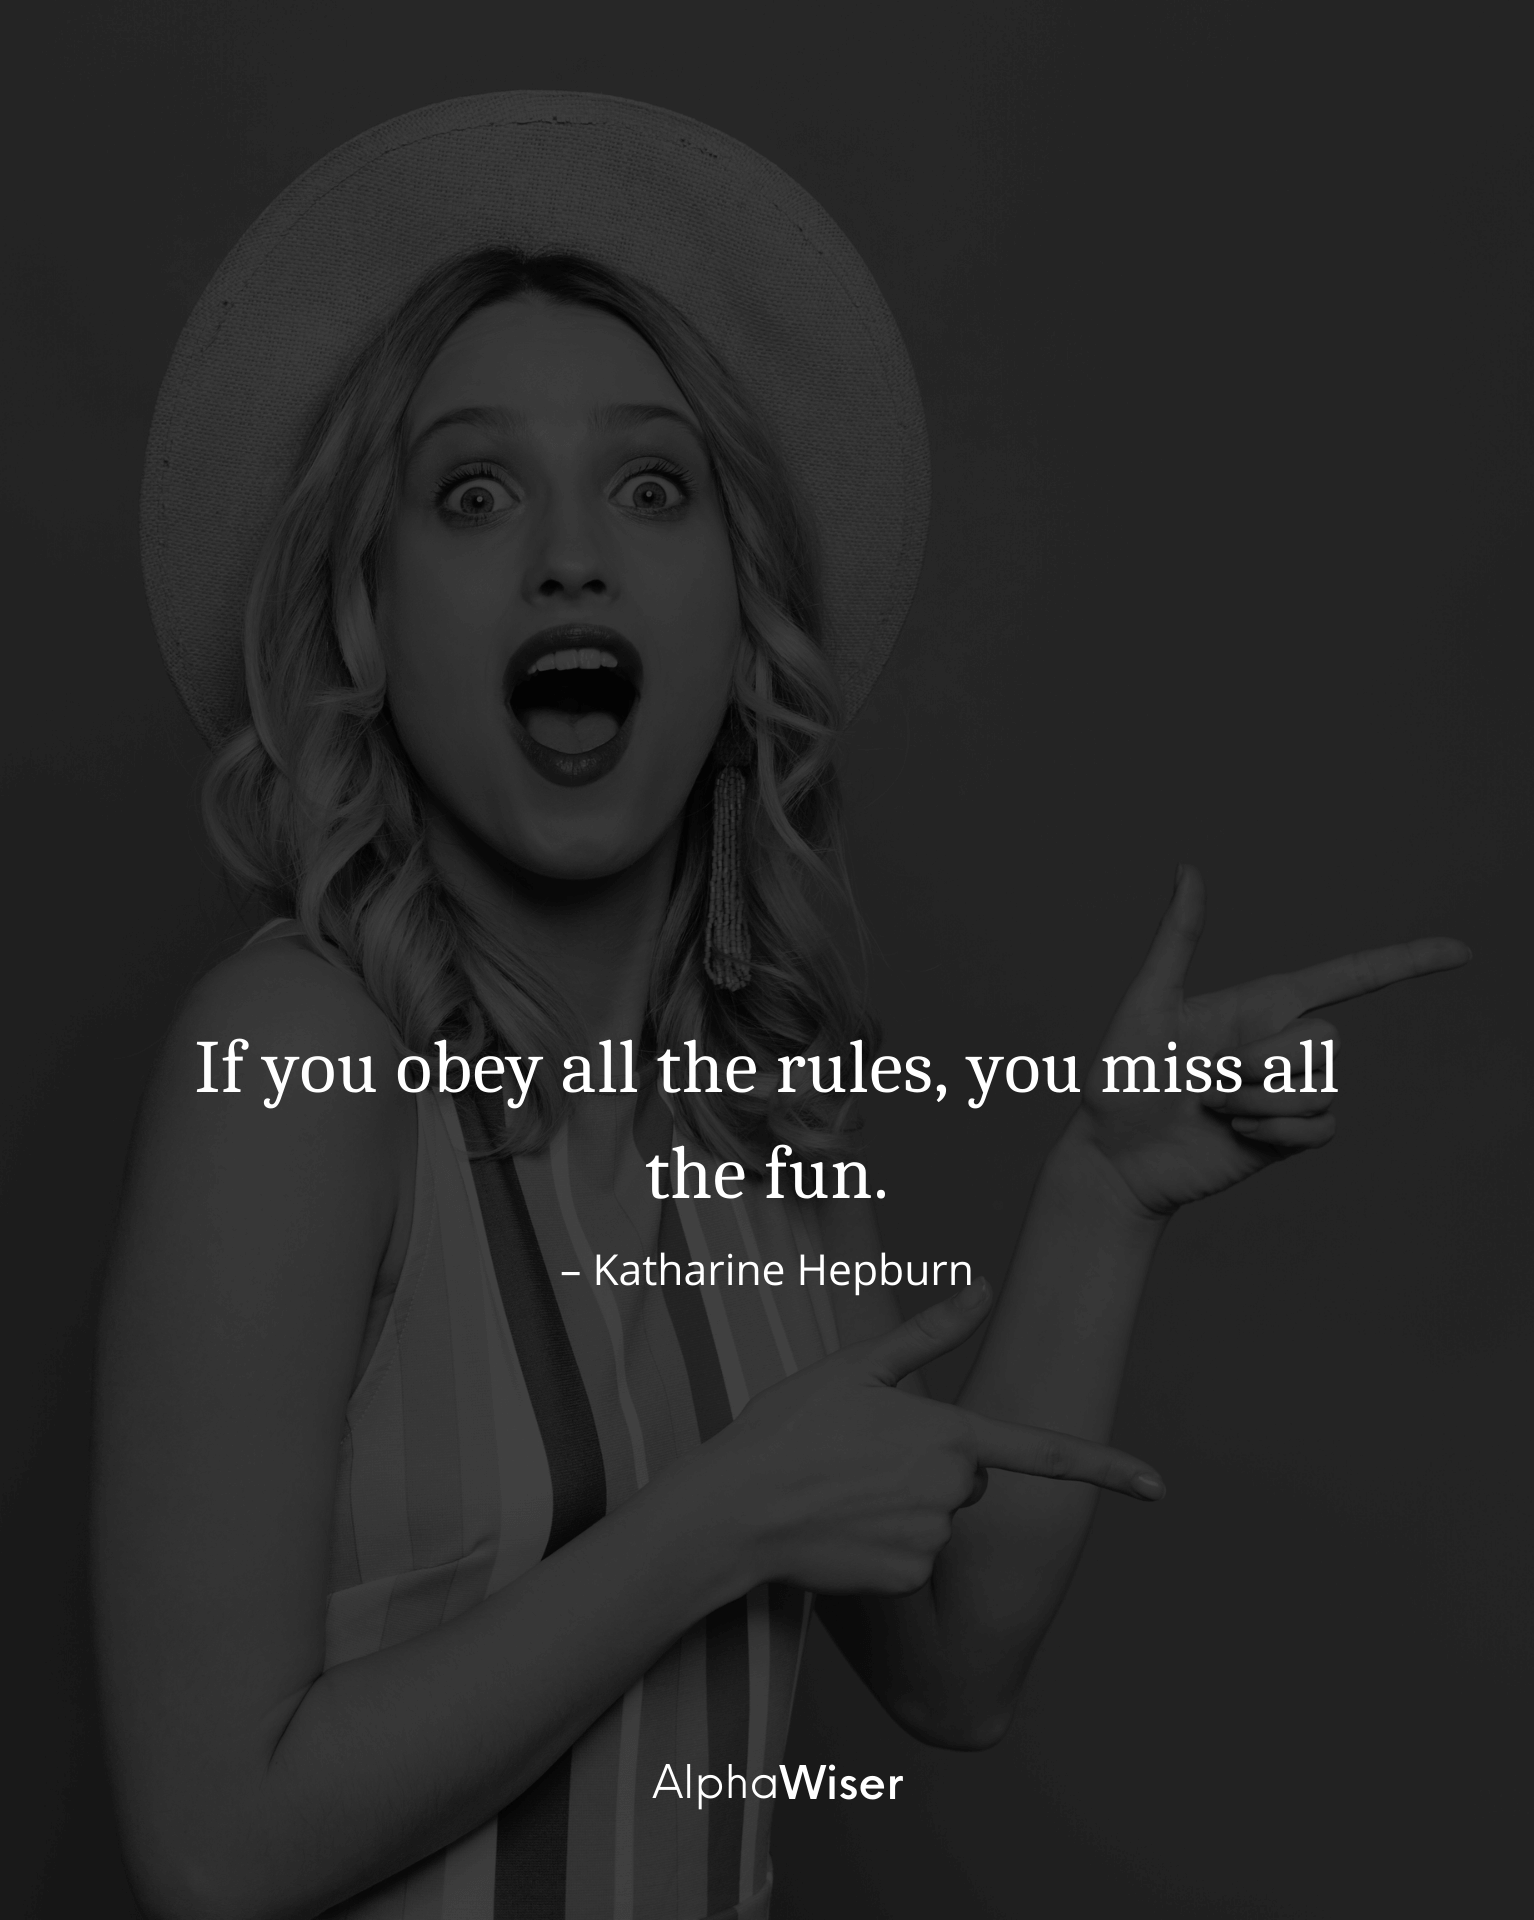 If you obey all the rules, you miss all the fun.